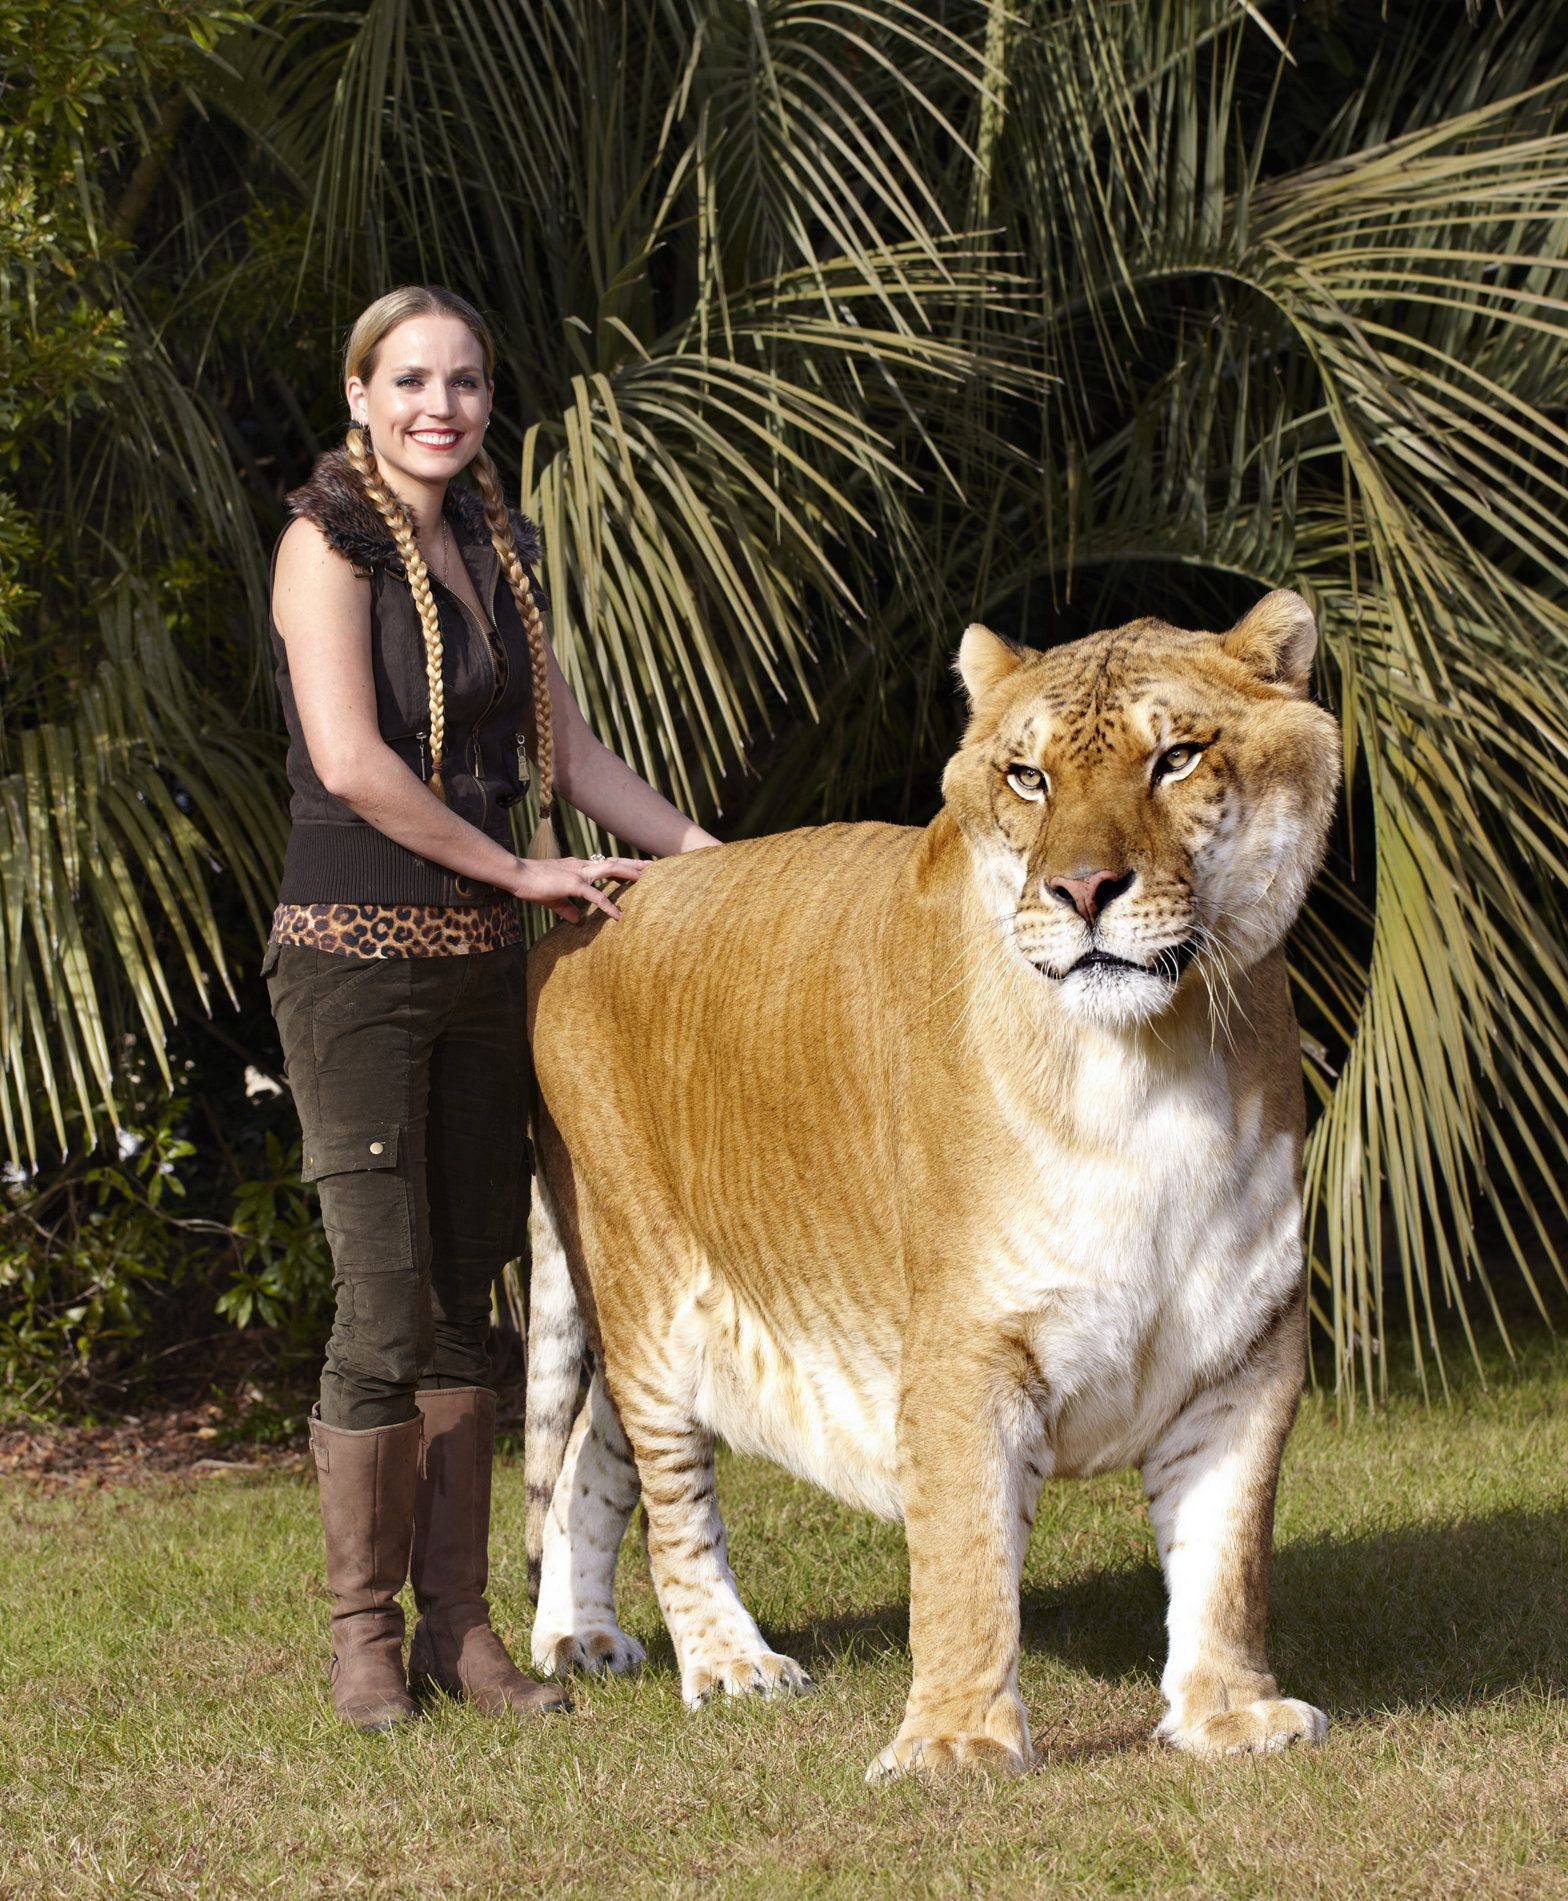 guinness world records amazing animals - Biggest Cat In The World Guinness 2014